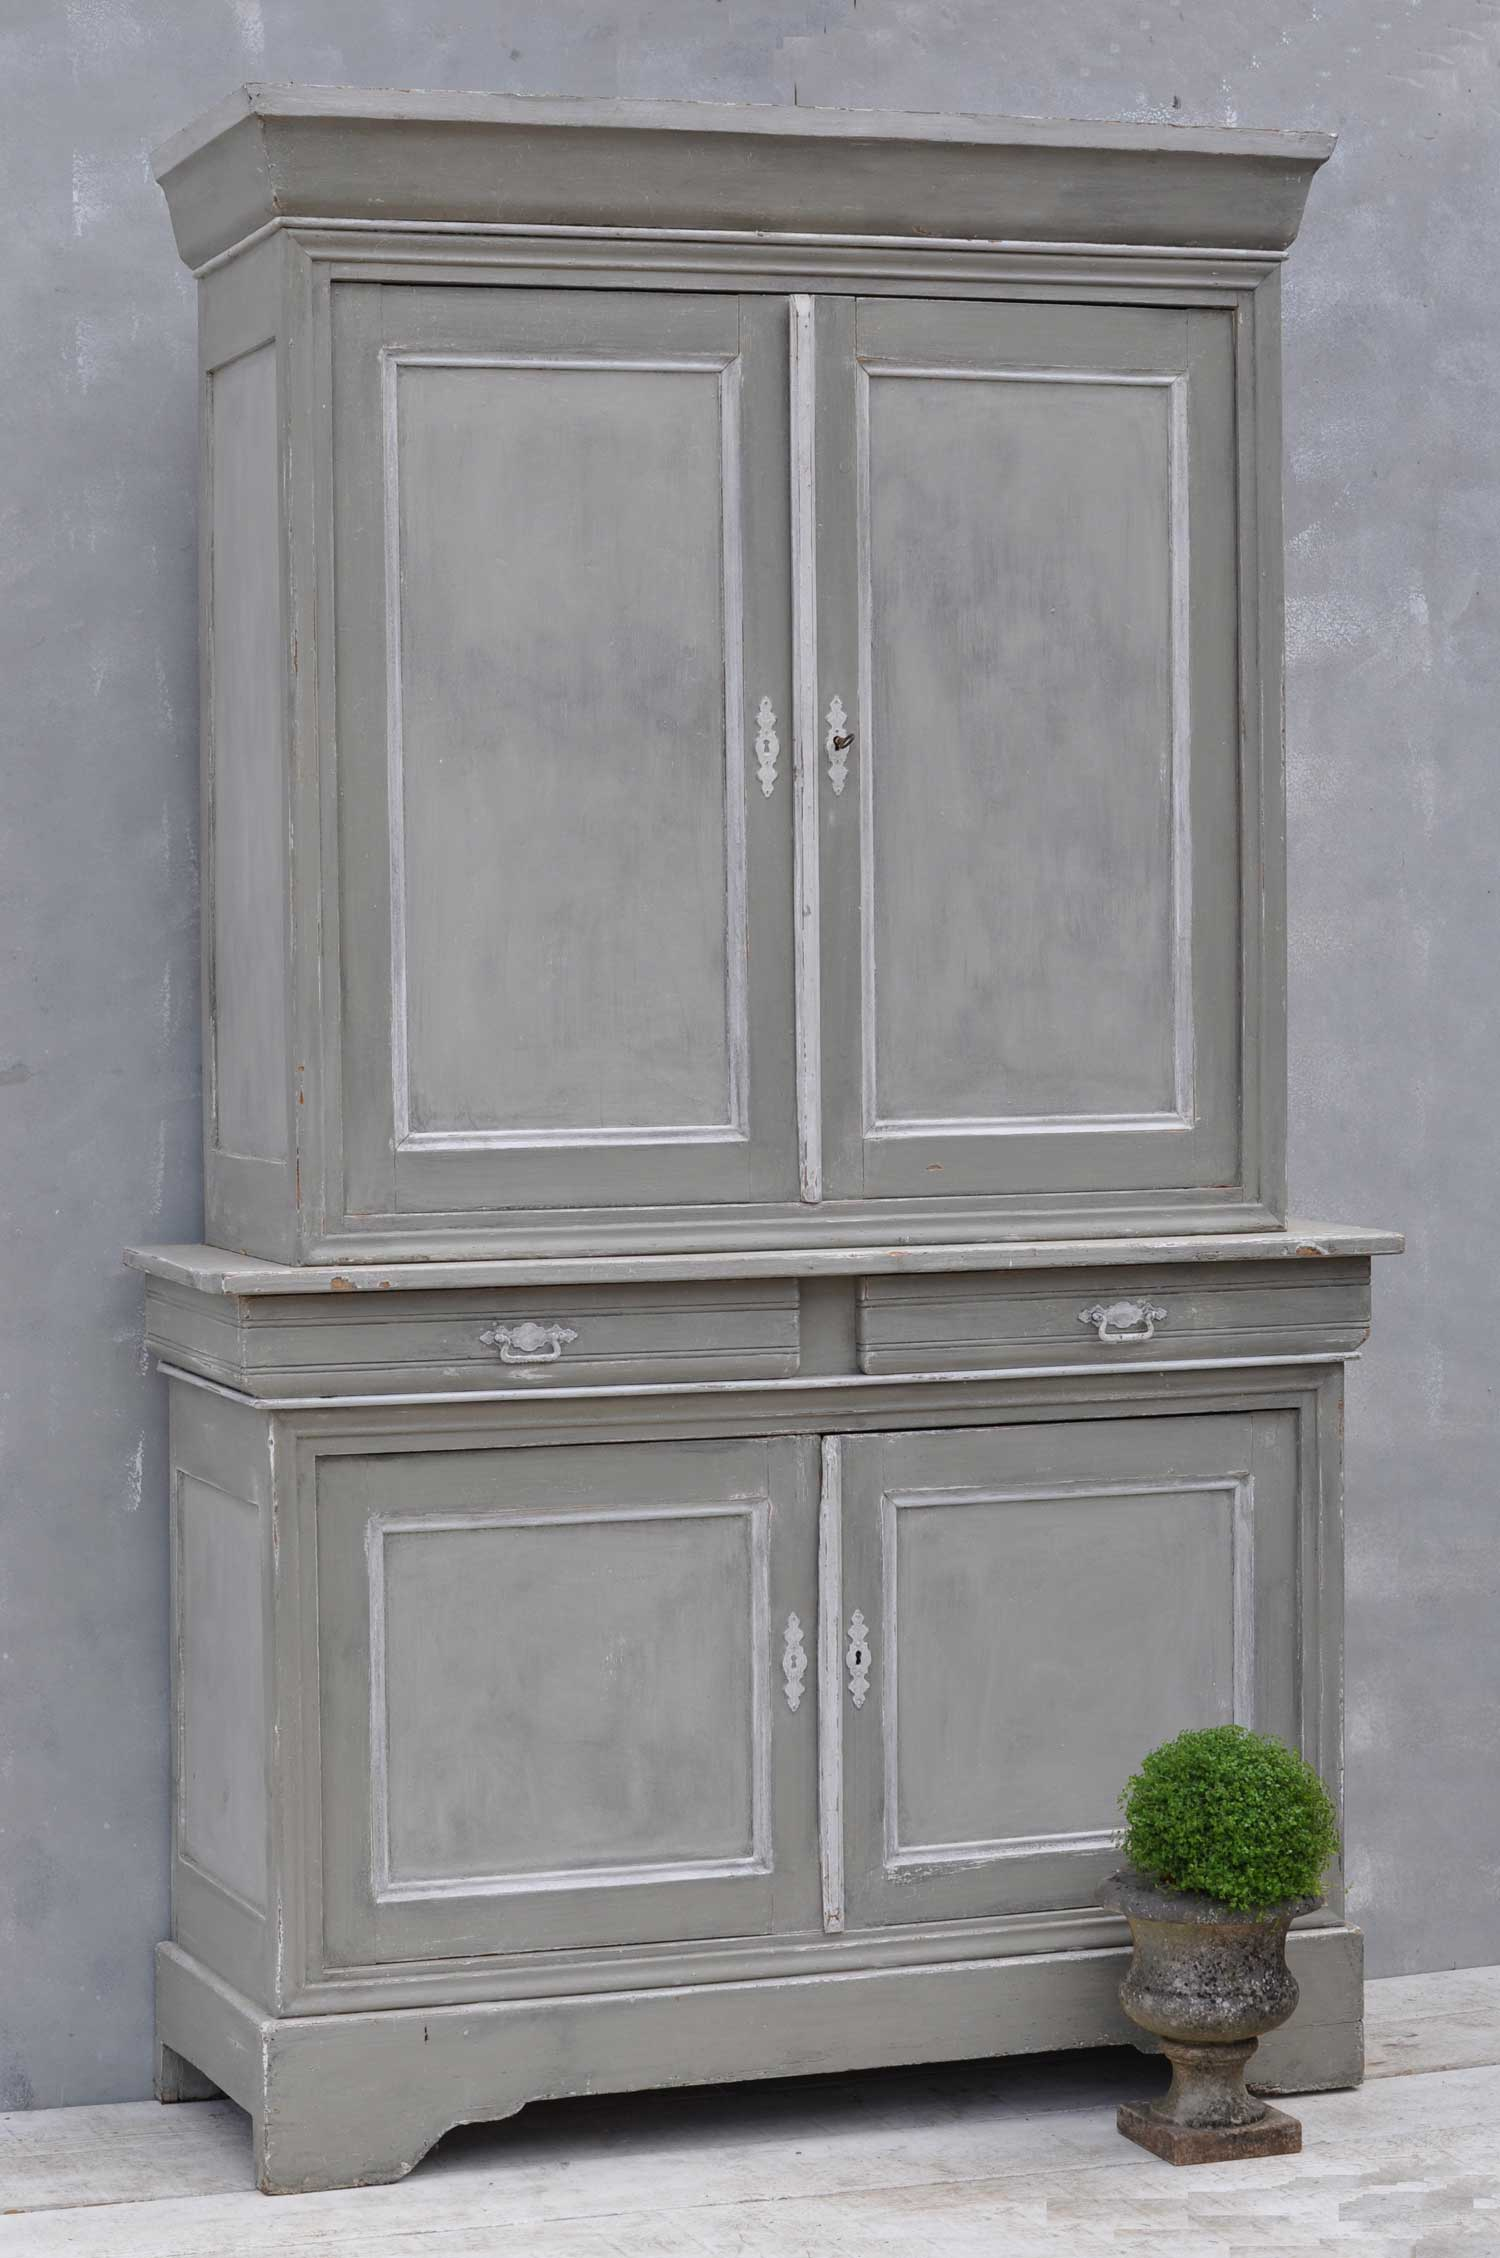 Ordinaire Vintage French Hand Painted Armoire Dresser